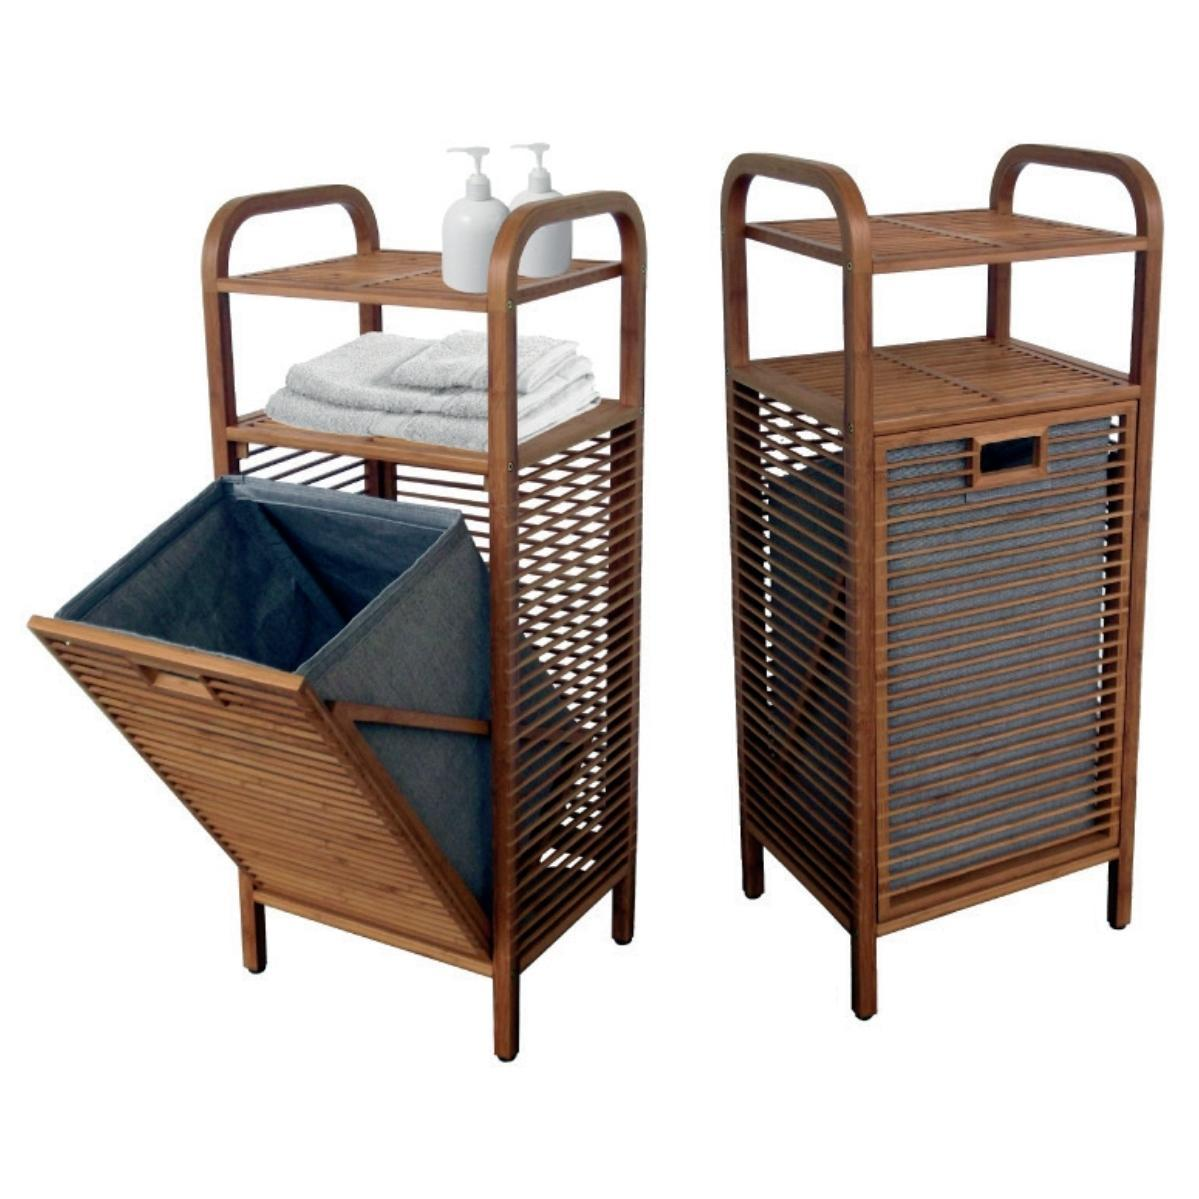 Laundry Basket With Shelves Laundry Basket With 2 Shelves With Bamboo Body 40Χ95Χ30 Cm